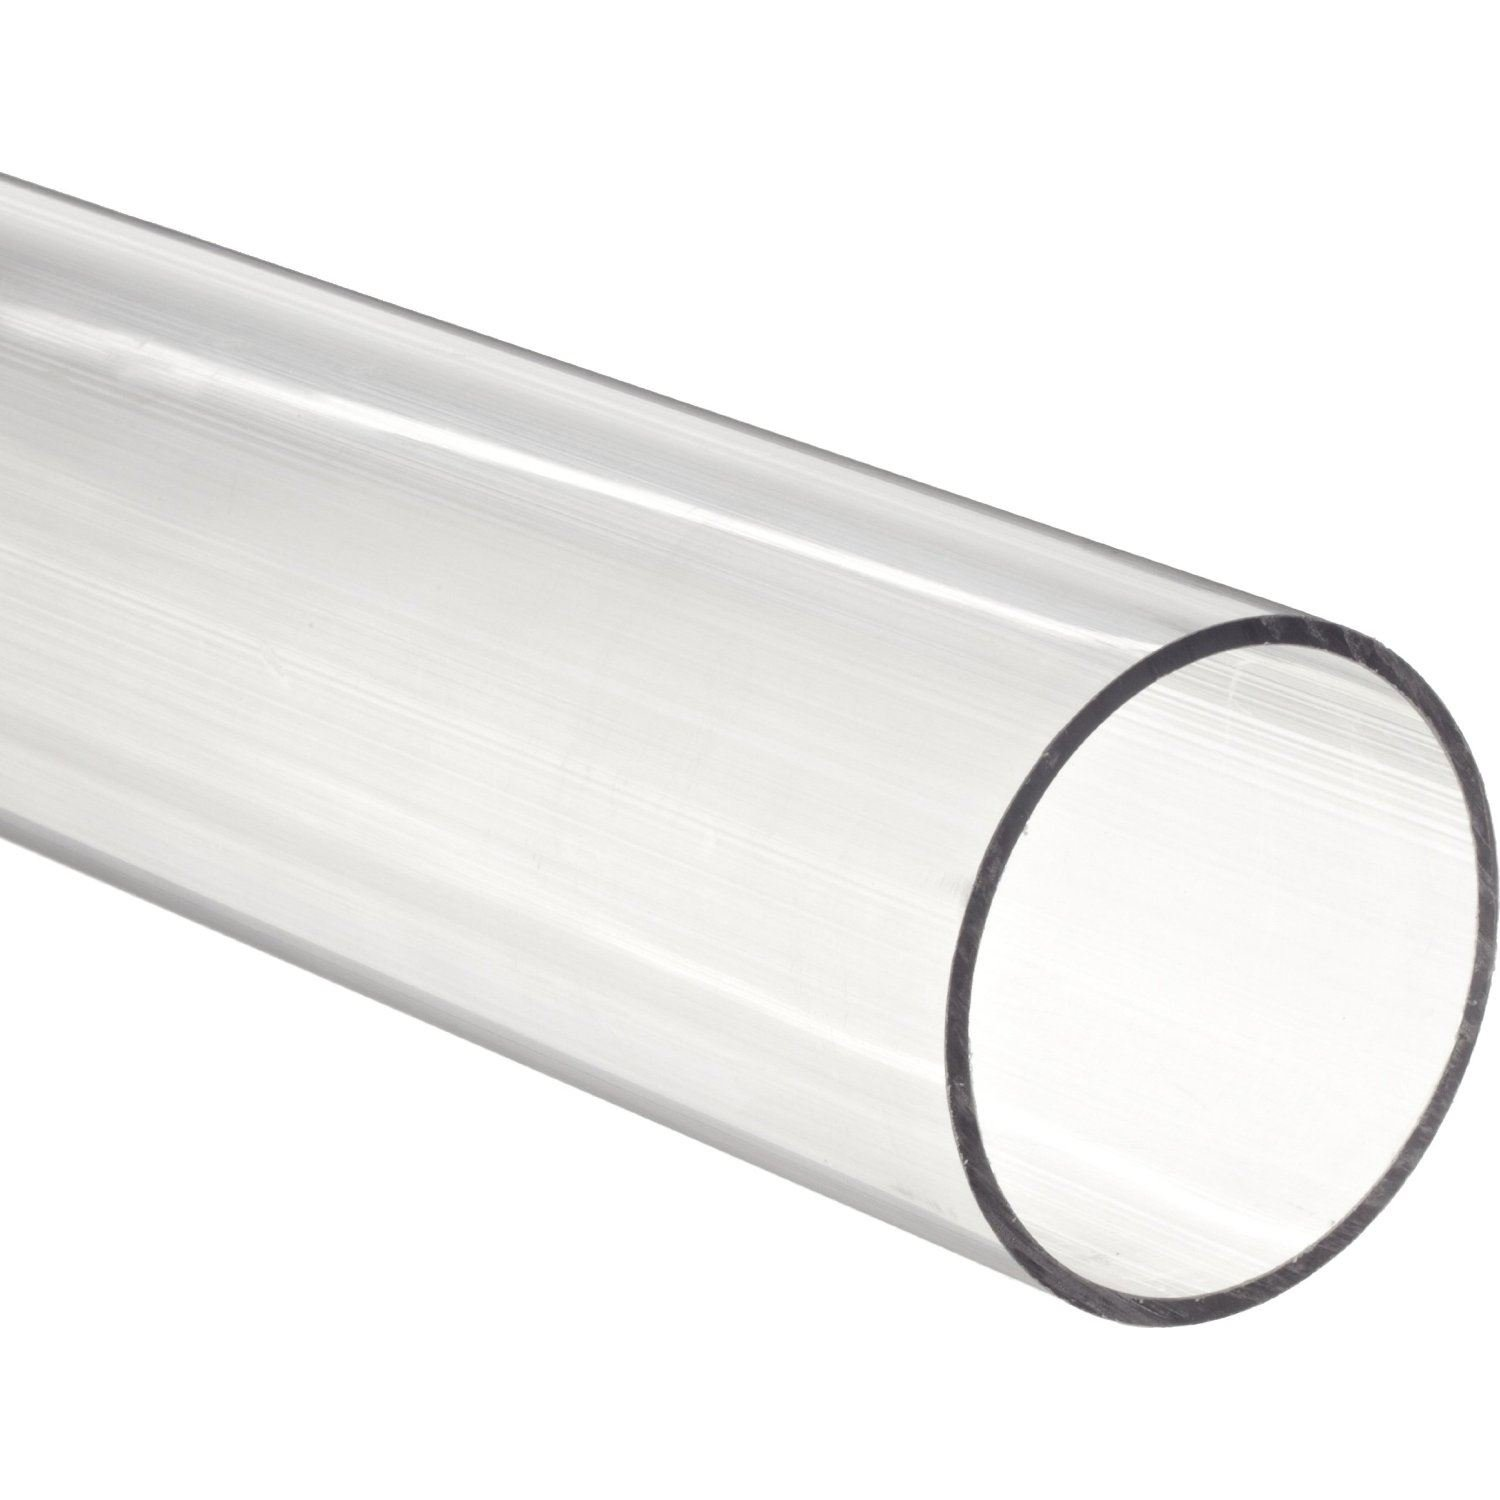 48'' Polycarbonate Round Tube (Clear) - 2-1/2'' ID x 3'' OD x 1/4'' Wall